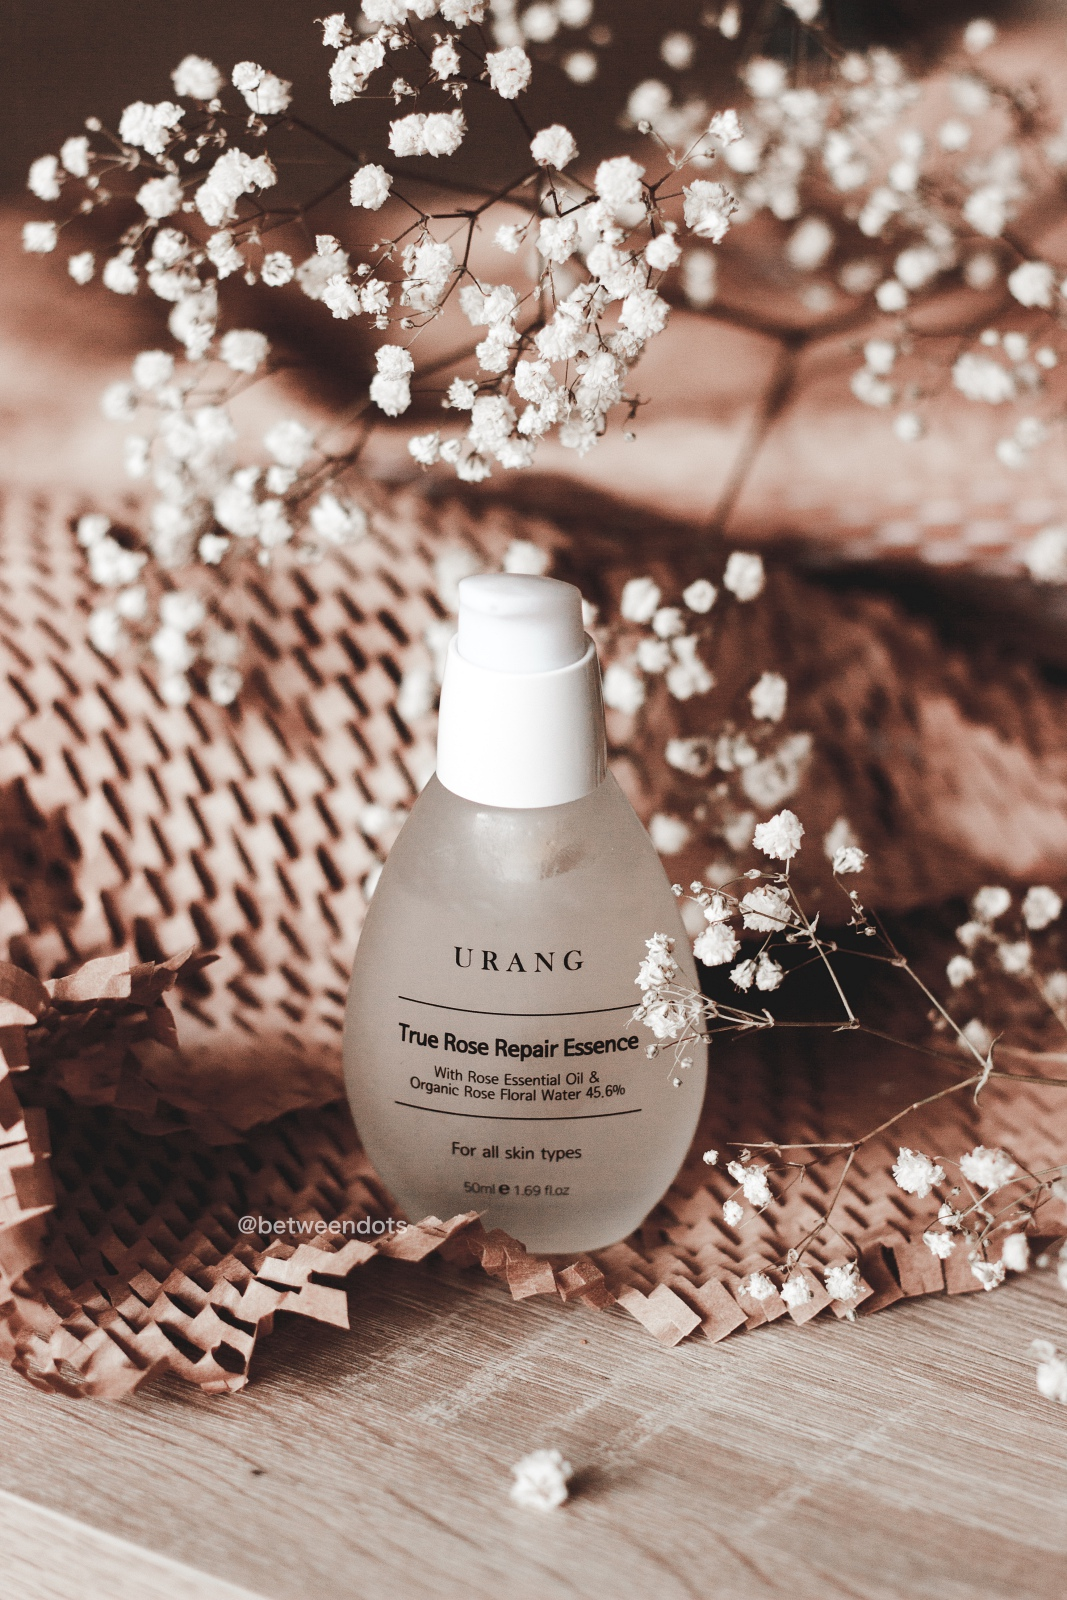 Urang True Rose Repair Essence